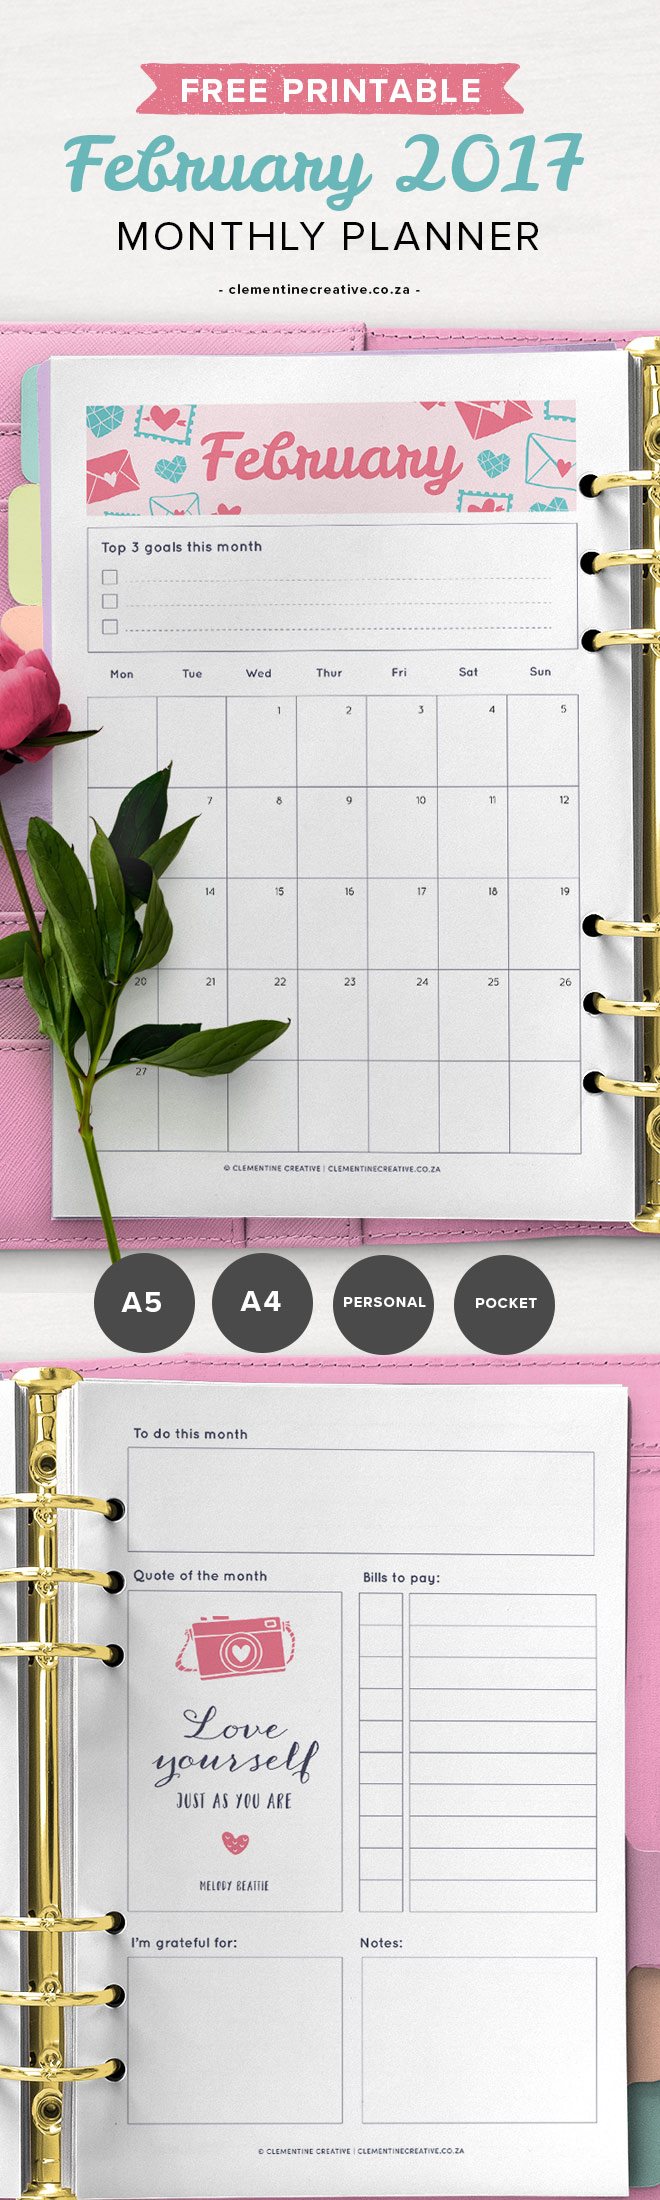 Get a new printable monthly planner template every month! It comes in A4, A5, Personal and Pocket sizes. Perfect for your binder. Download February's monthly planner here.